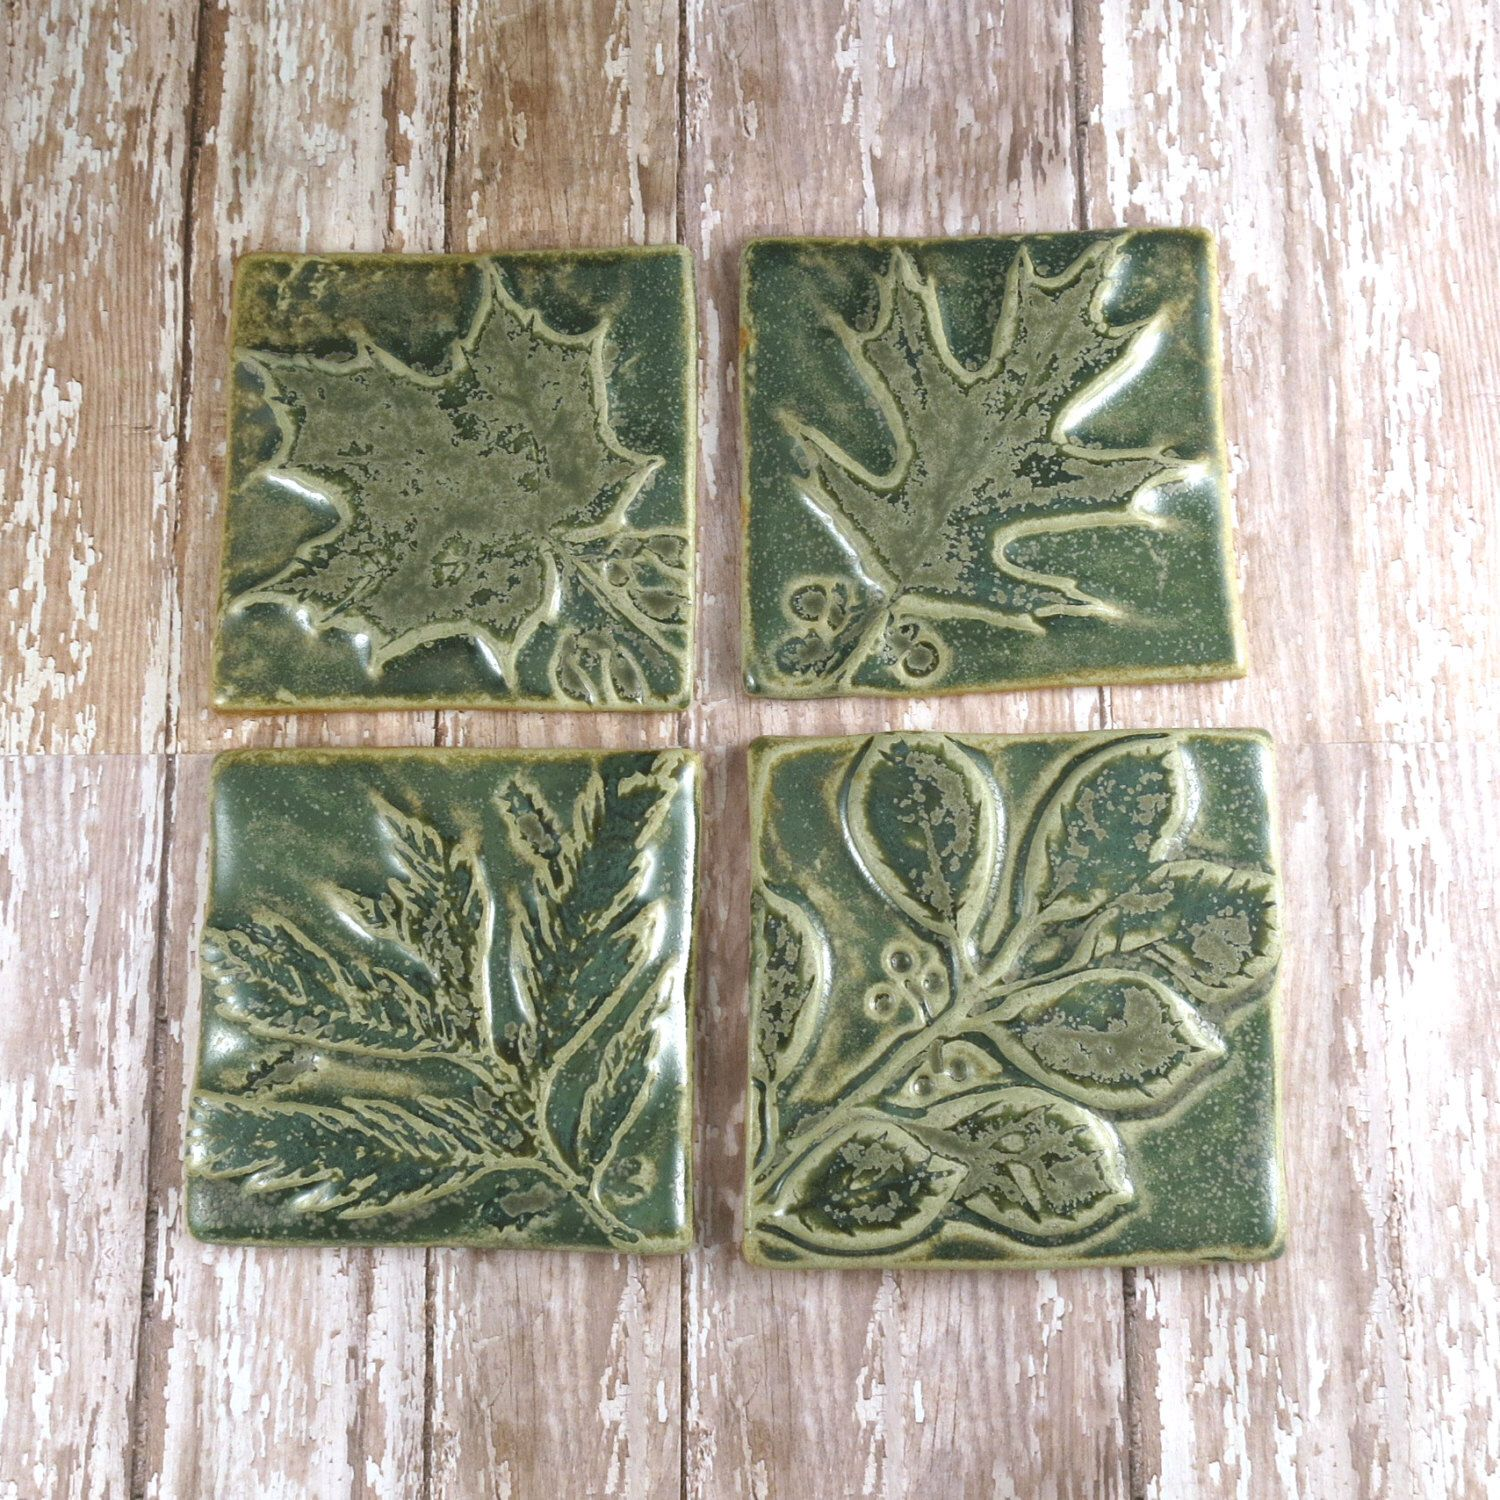 Ceramic Tile Pottery Handmade Accent Tile Wall Art Kitchen ...